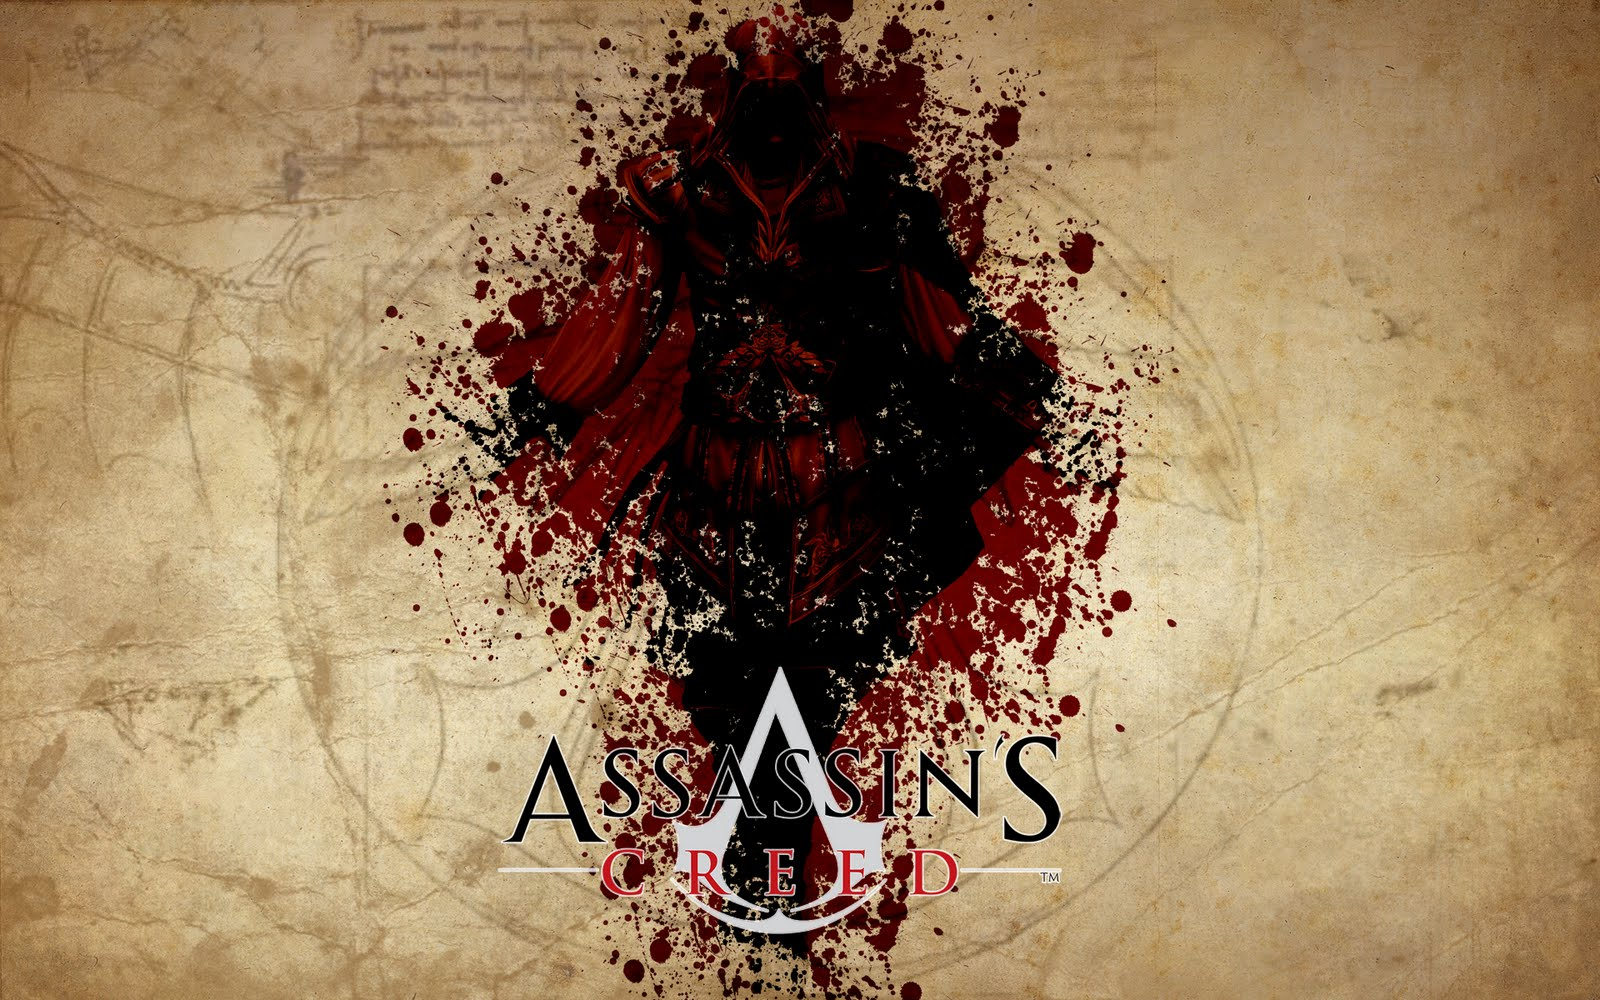 http://1.bp.blogspot.com/_j6hb7P0UBkc/TN8sfkE14KI/AAAAAAAAAEE/YsaA0trVstk/s1600/Assassins_Creed_2_Wallpaper_HD.jpg